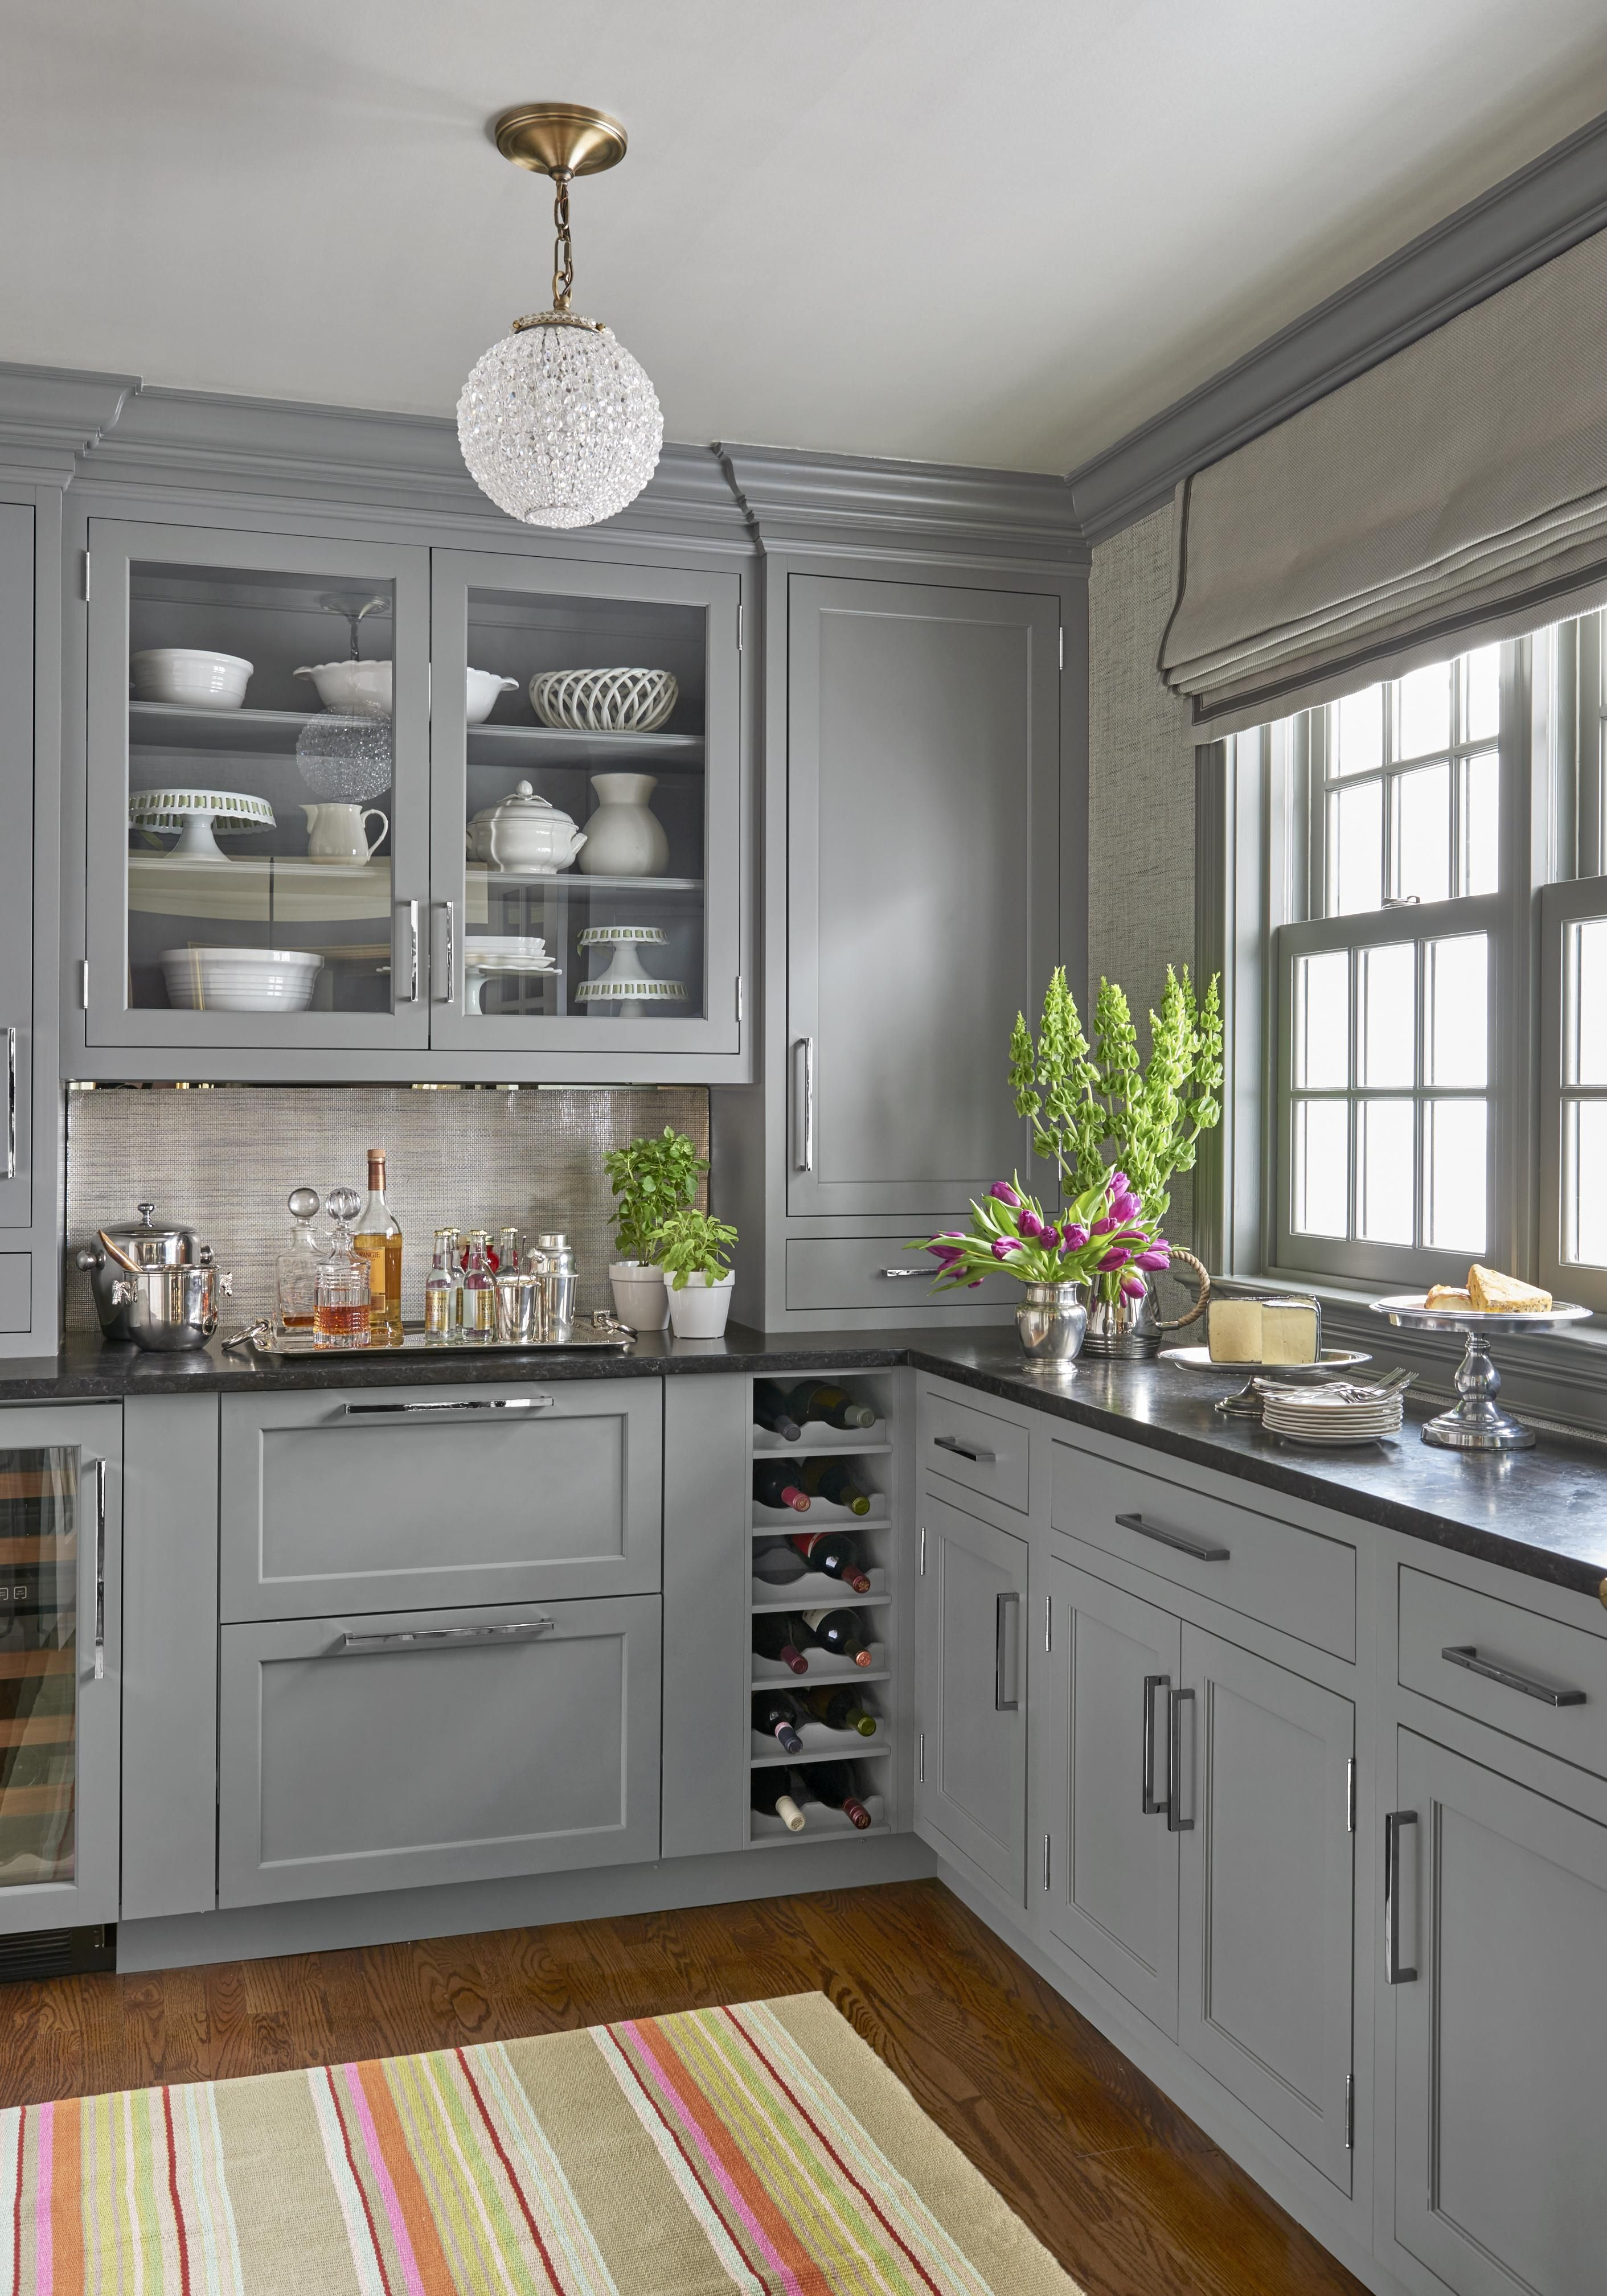 A Dated Cook Space Gives Way To A Sophisticated, Open